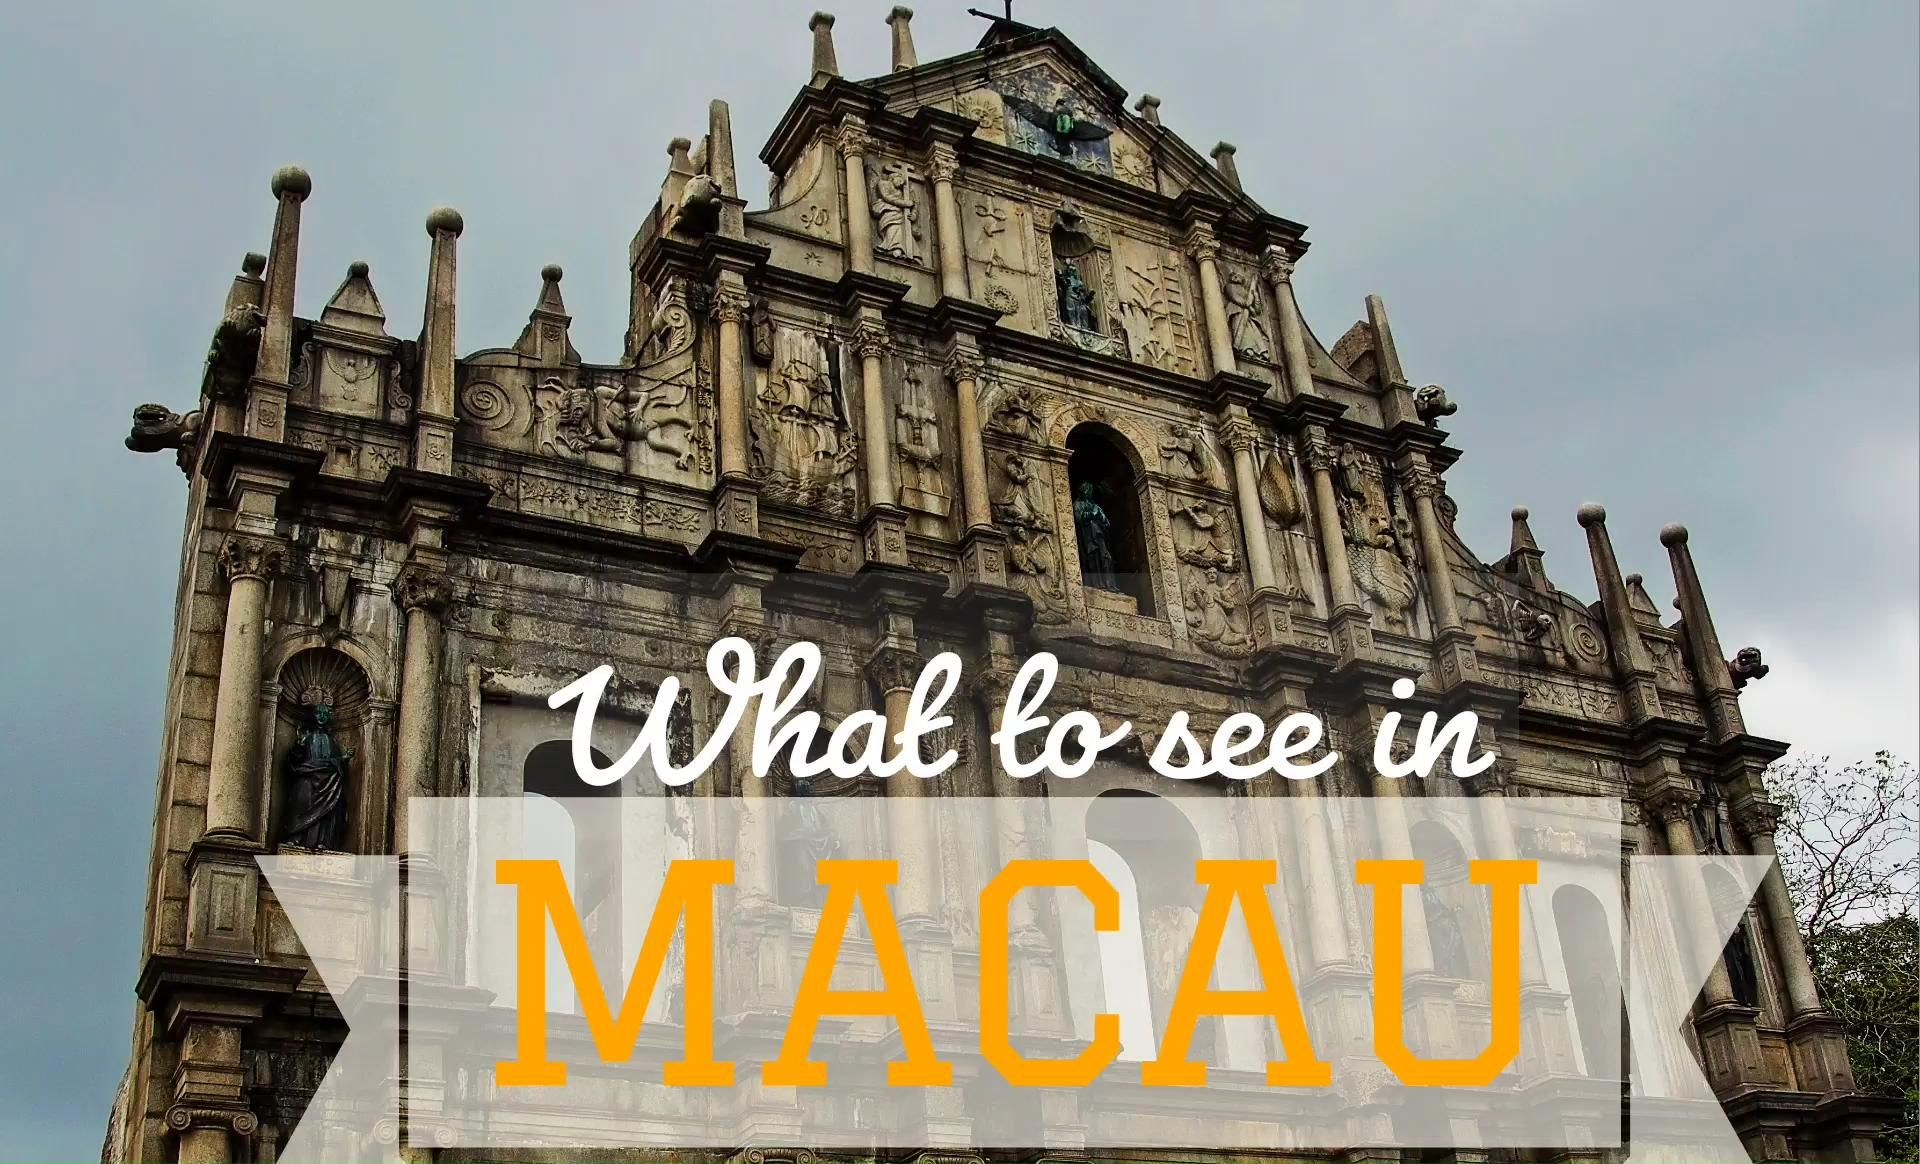 Macau is for quite some time popular for its Casinos and extravagant hotels. But at par with its glitz, Macau has a century old heritage and culture which cannot be overlooked. This travel guide will give you a quick peek into things to do in Macau and more details about this historic city. Casinos Streets of Macau, Senado Square, Monte Fort, Ruins of St. Paul's St. Dominic's Church, A-Ma Temple.  #macau #macauchina #visitmacau #china #backpackingasia #daytrip #travel #travelguide #travelblog